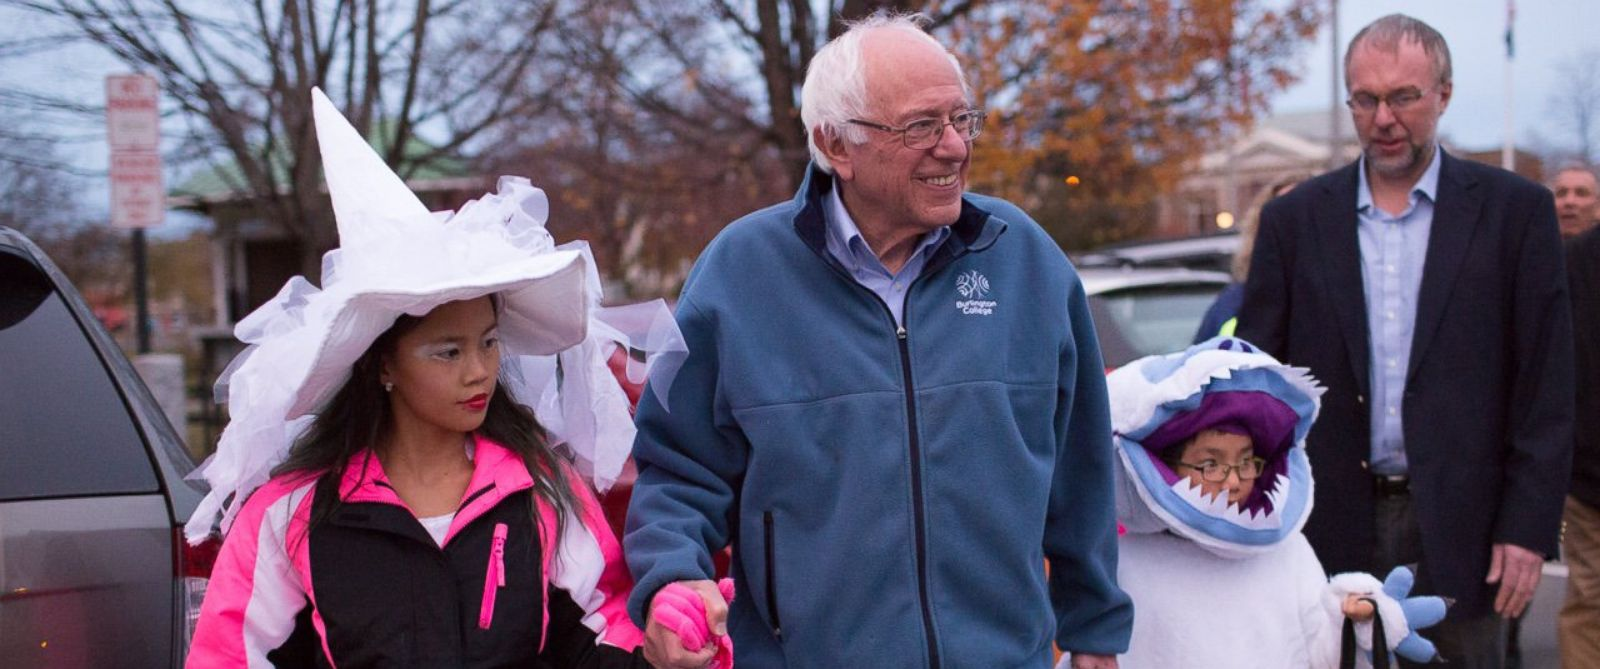 PHOTO: Bernie Sanders went trick-or-treating with three of his grandchildren in a neighborhood in Lebanon, New Hampshire, Oct. 31, 2015.